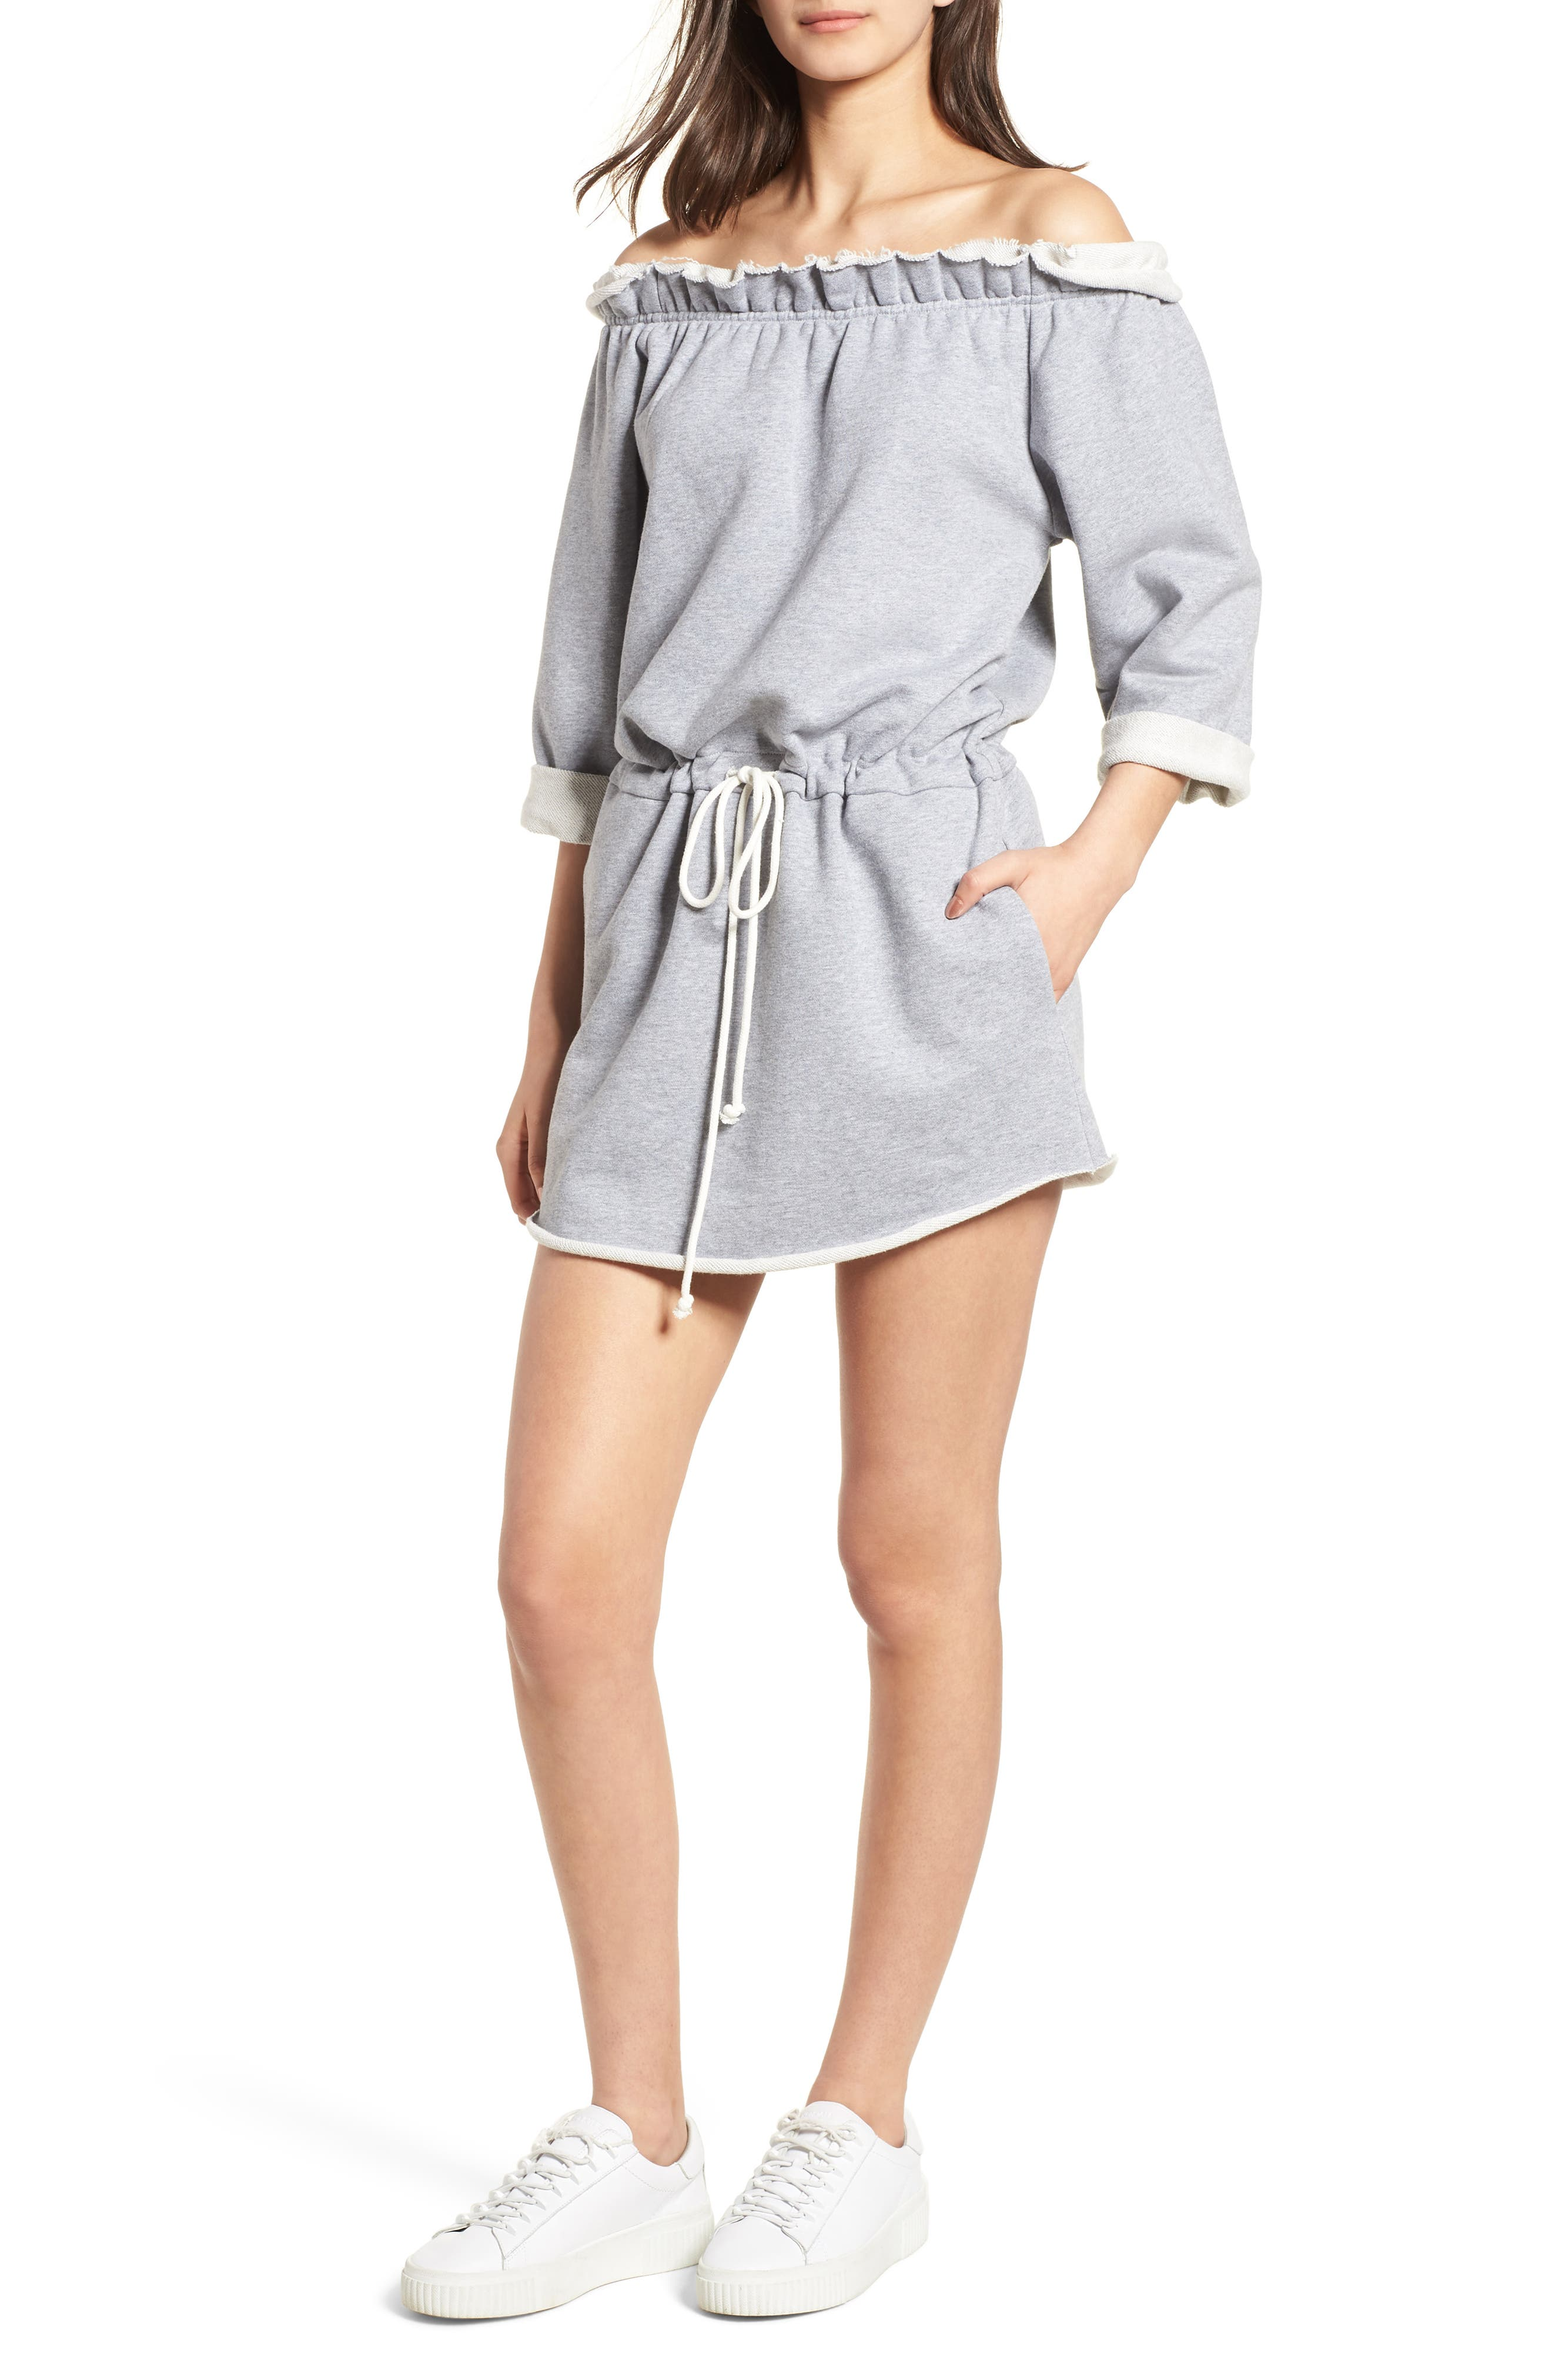 Off the Shoulder Dress,                         Main,                         color, Heather Grey